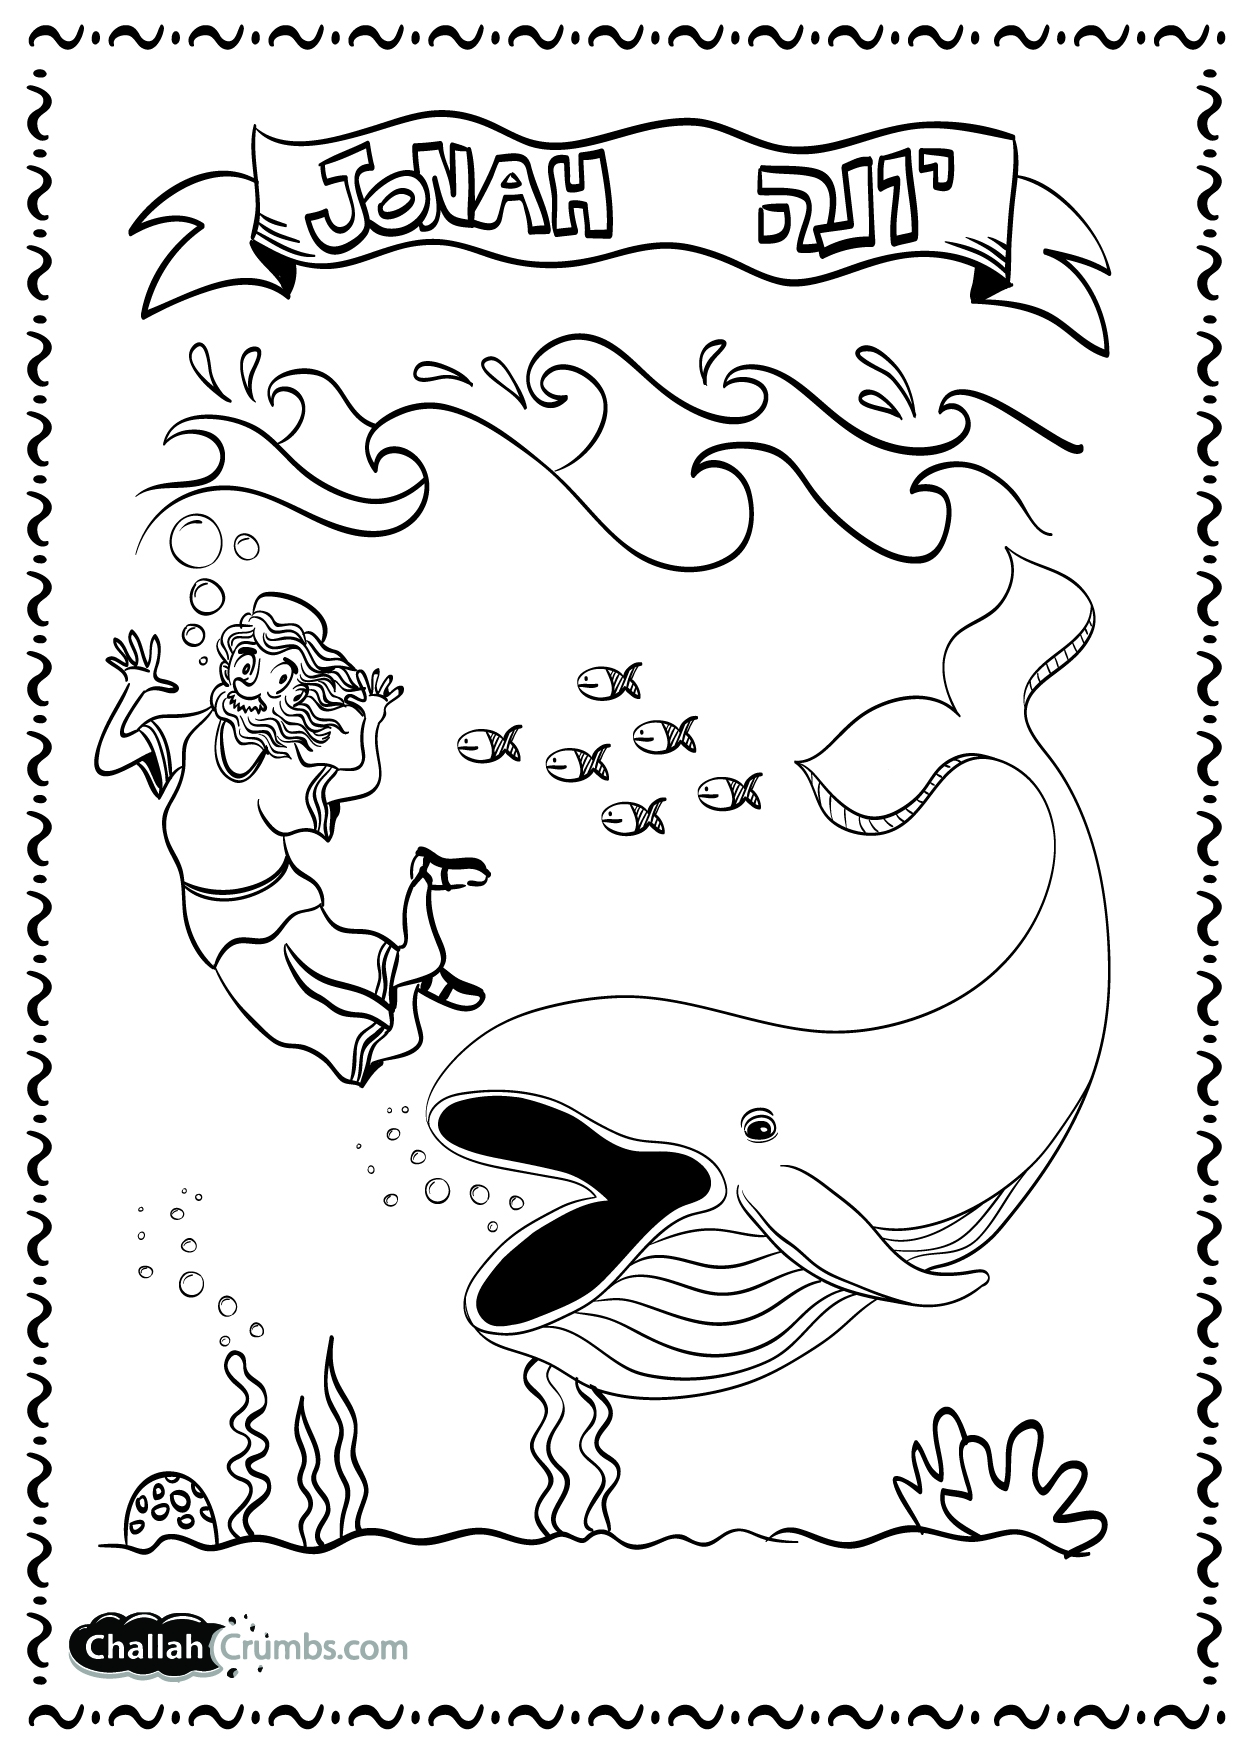 Gruffalo Coloring Pages At Getcolorings